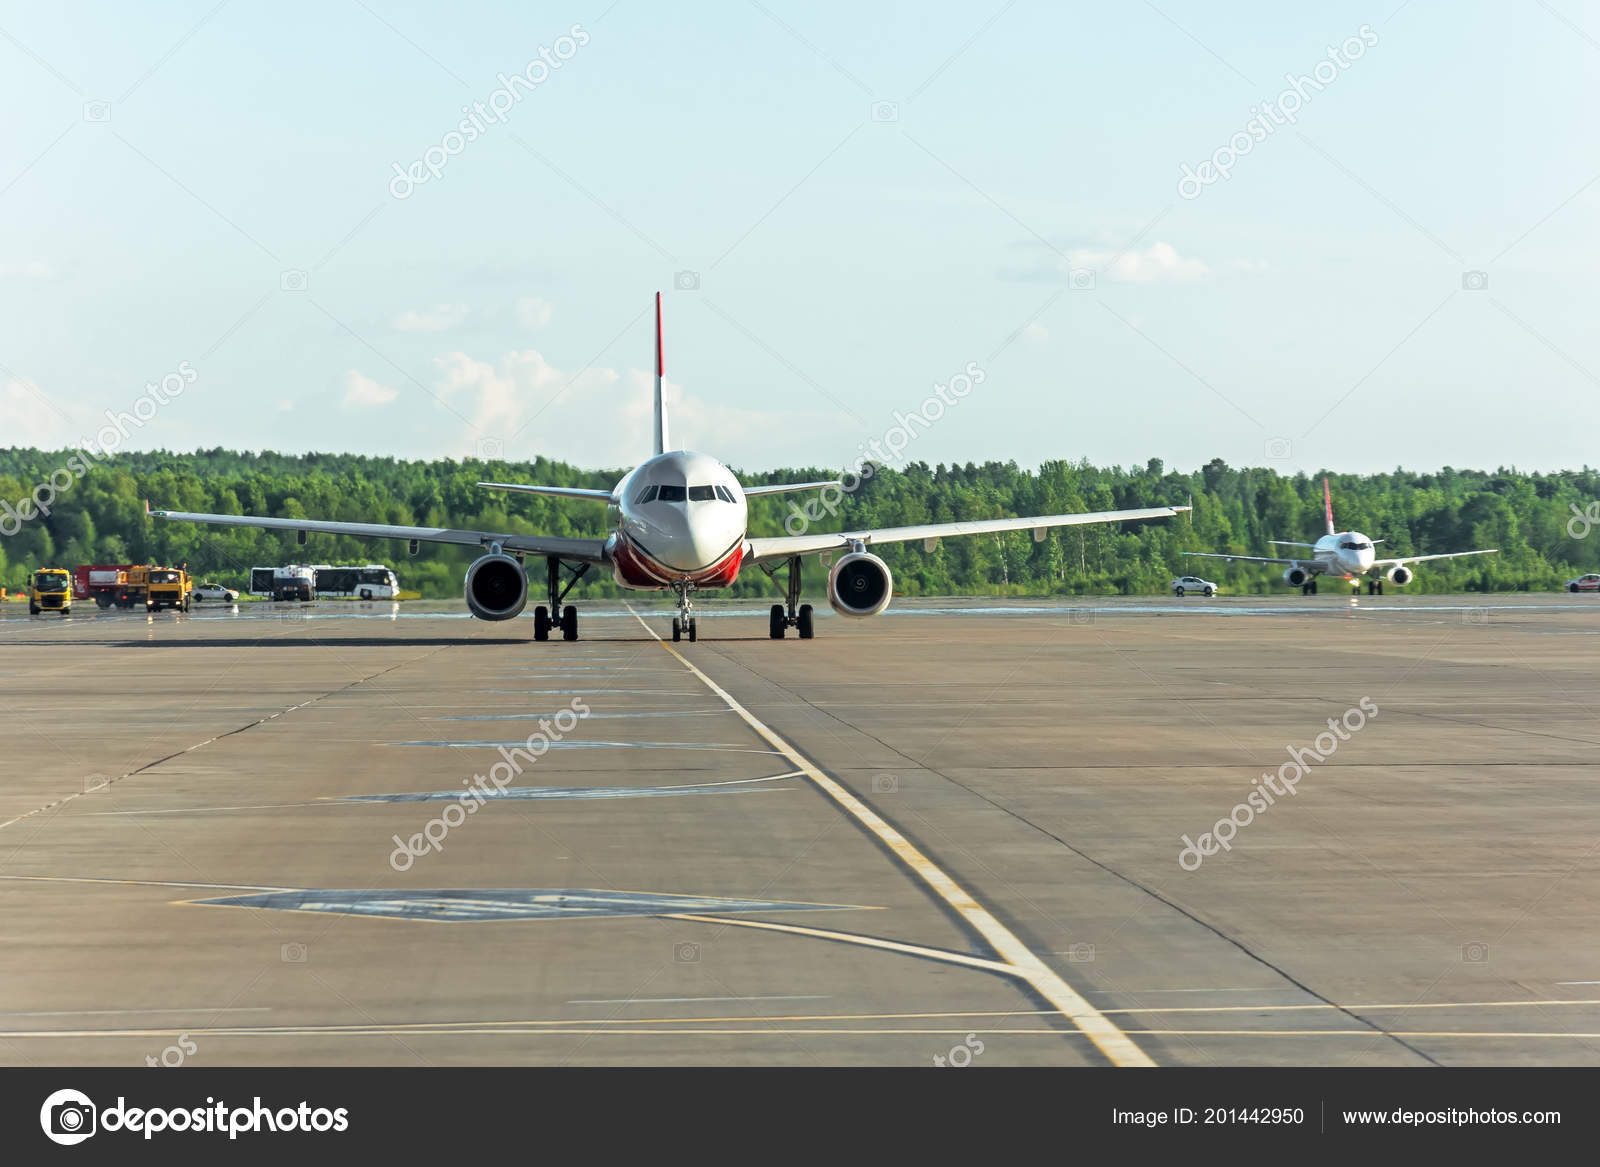 Airplane Taxiing Apron Airport Asphalt Visible Marking